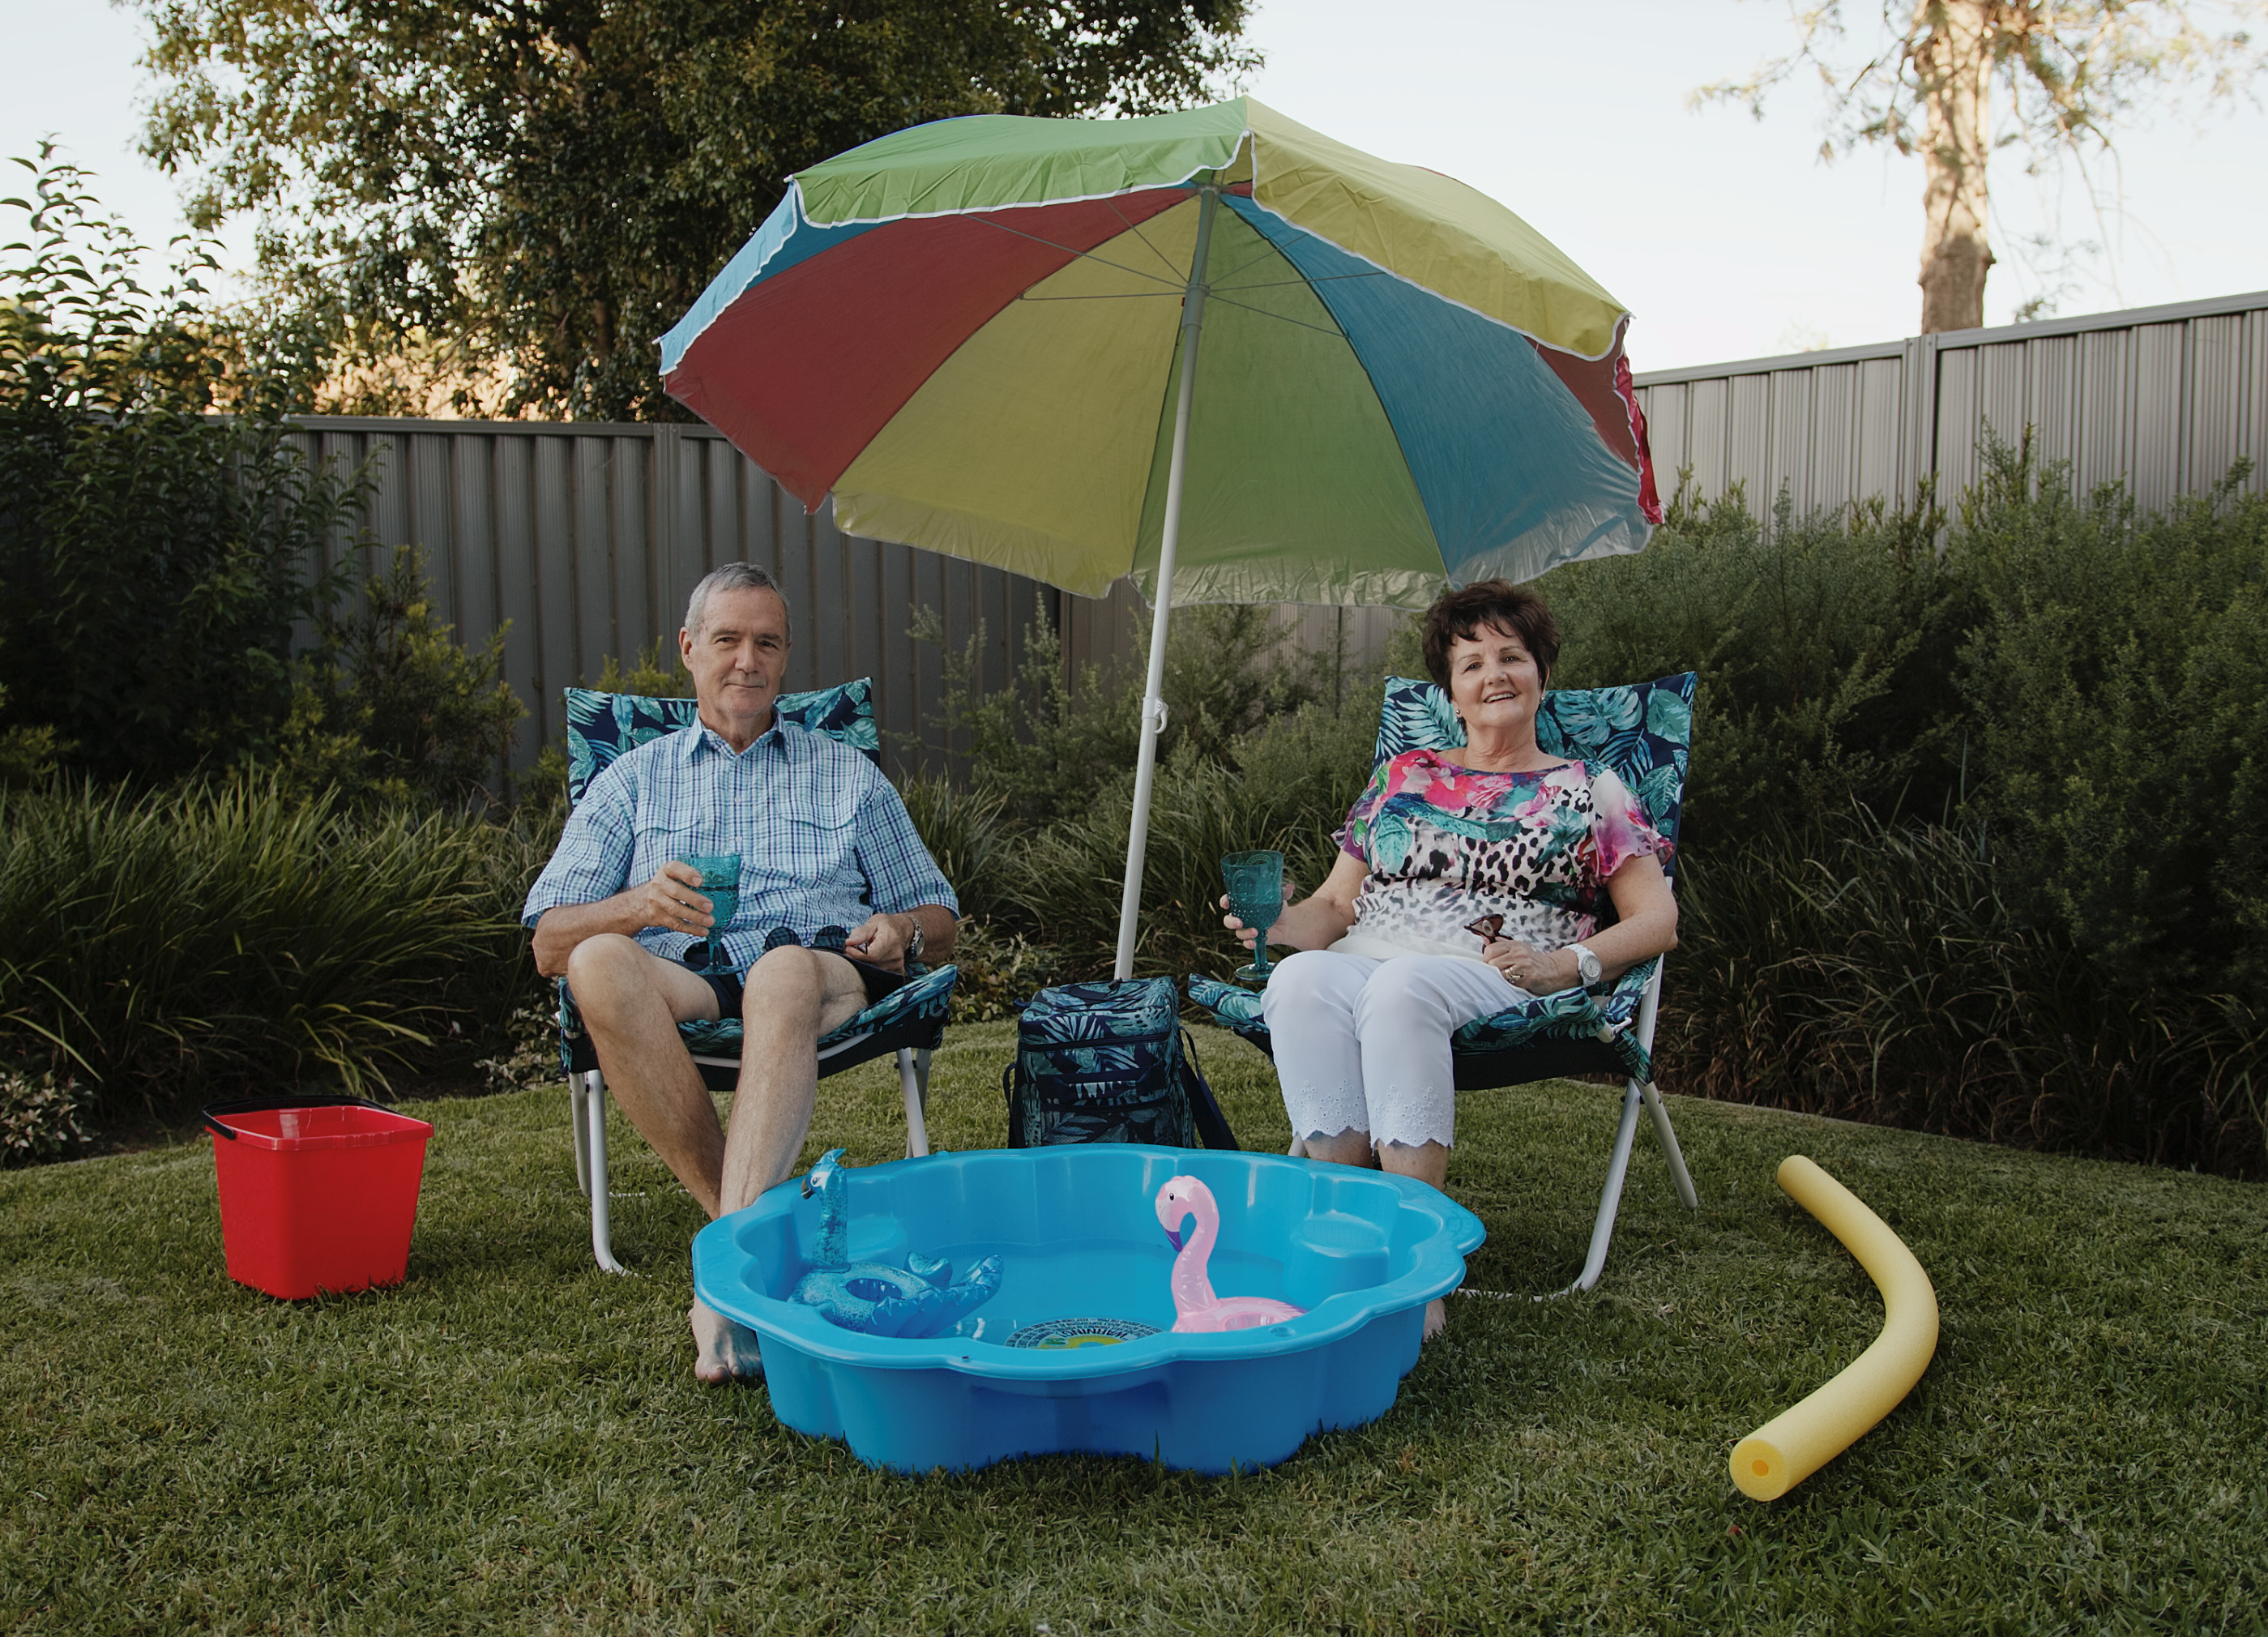 A photo of an elderly couple sitting next to a portable pool